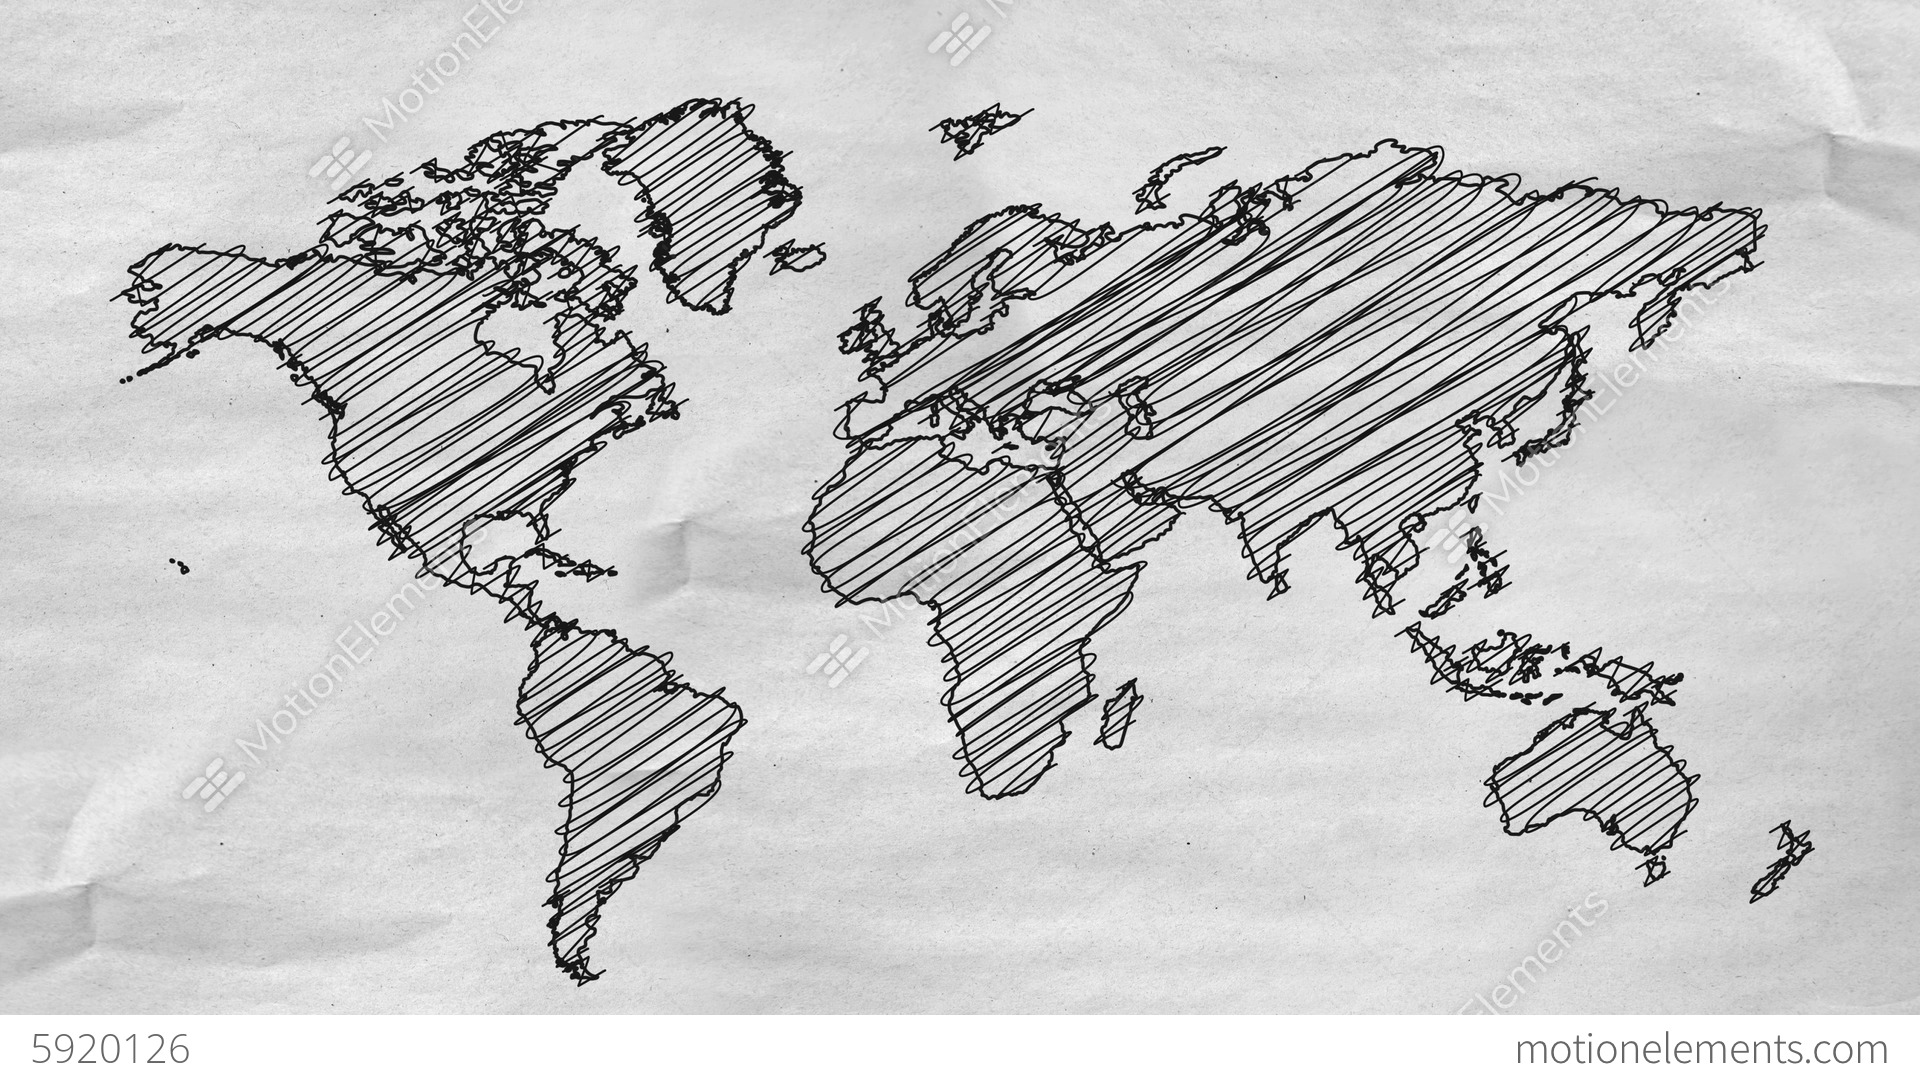 world map drawing alpha channel 4k resolution uh stock